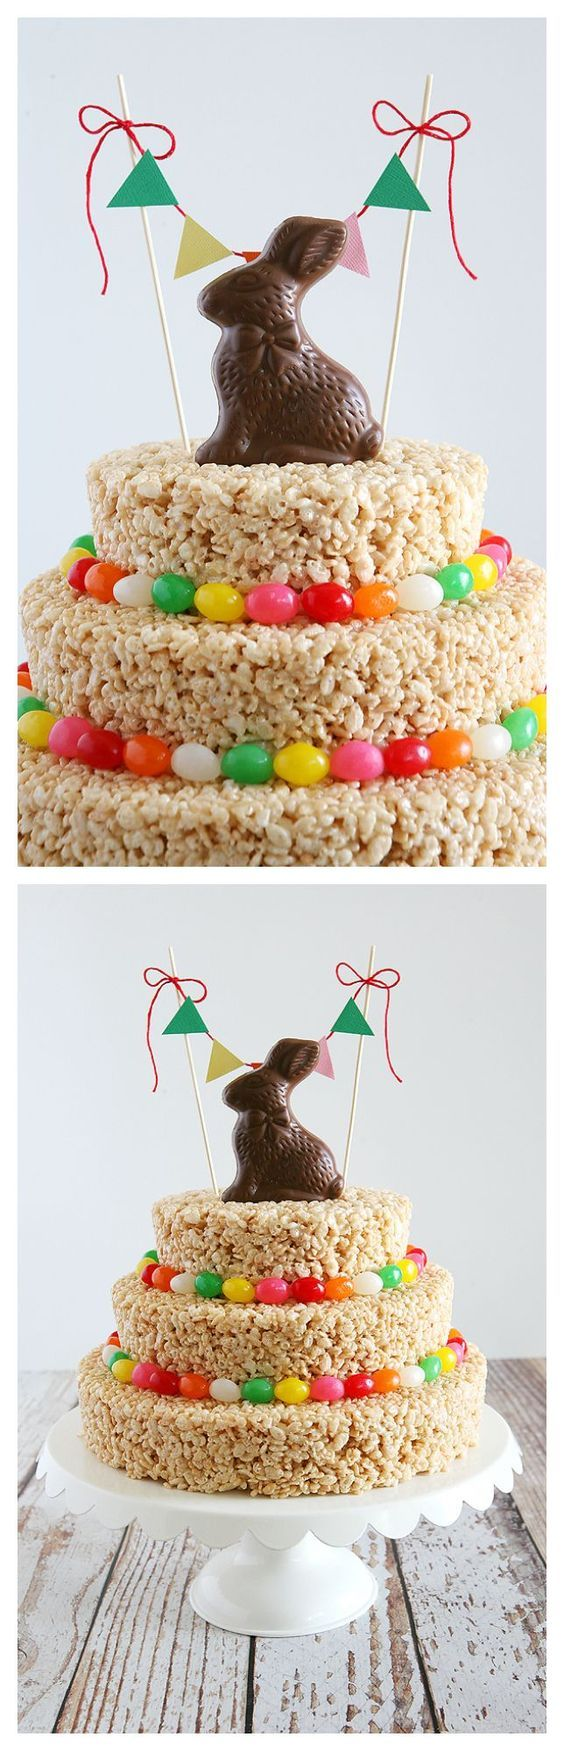 Easter Rice Krispies Treat Cake